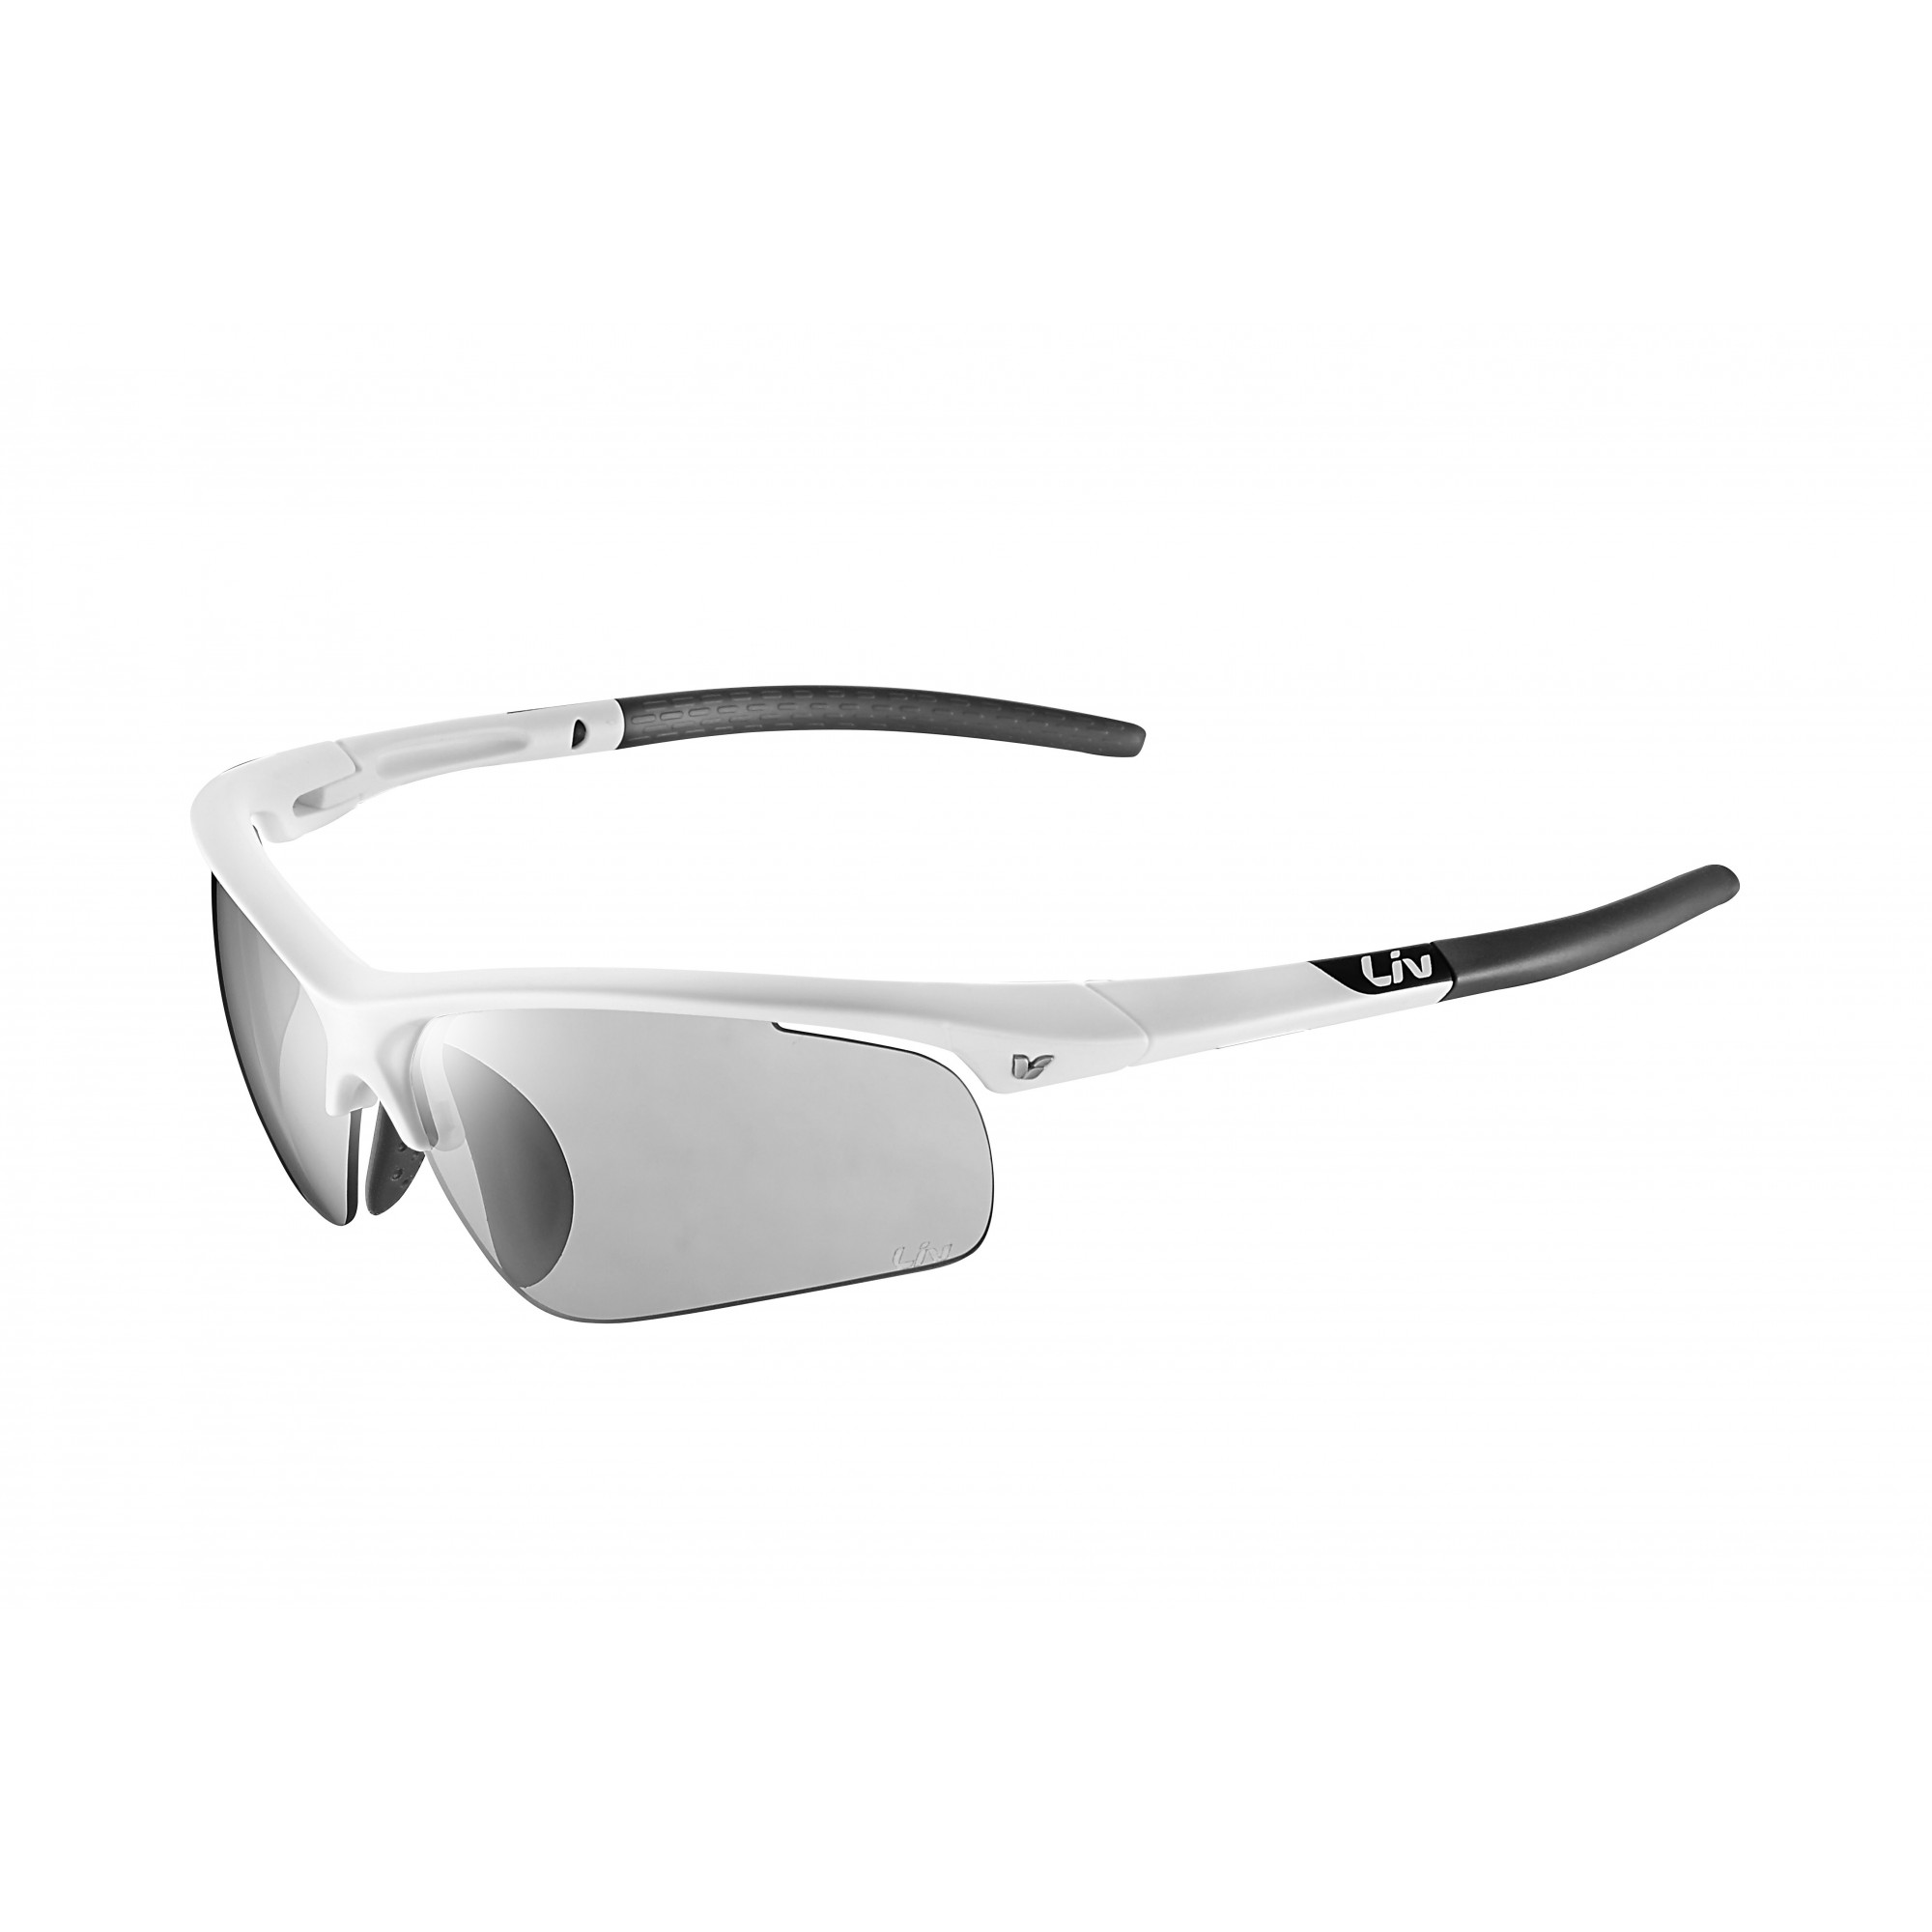 Lunettes Liv Piercing NXT Varia blanches